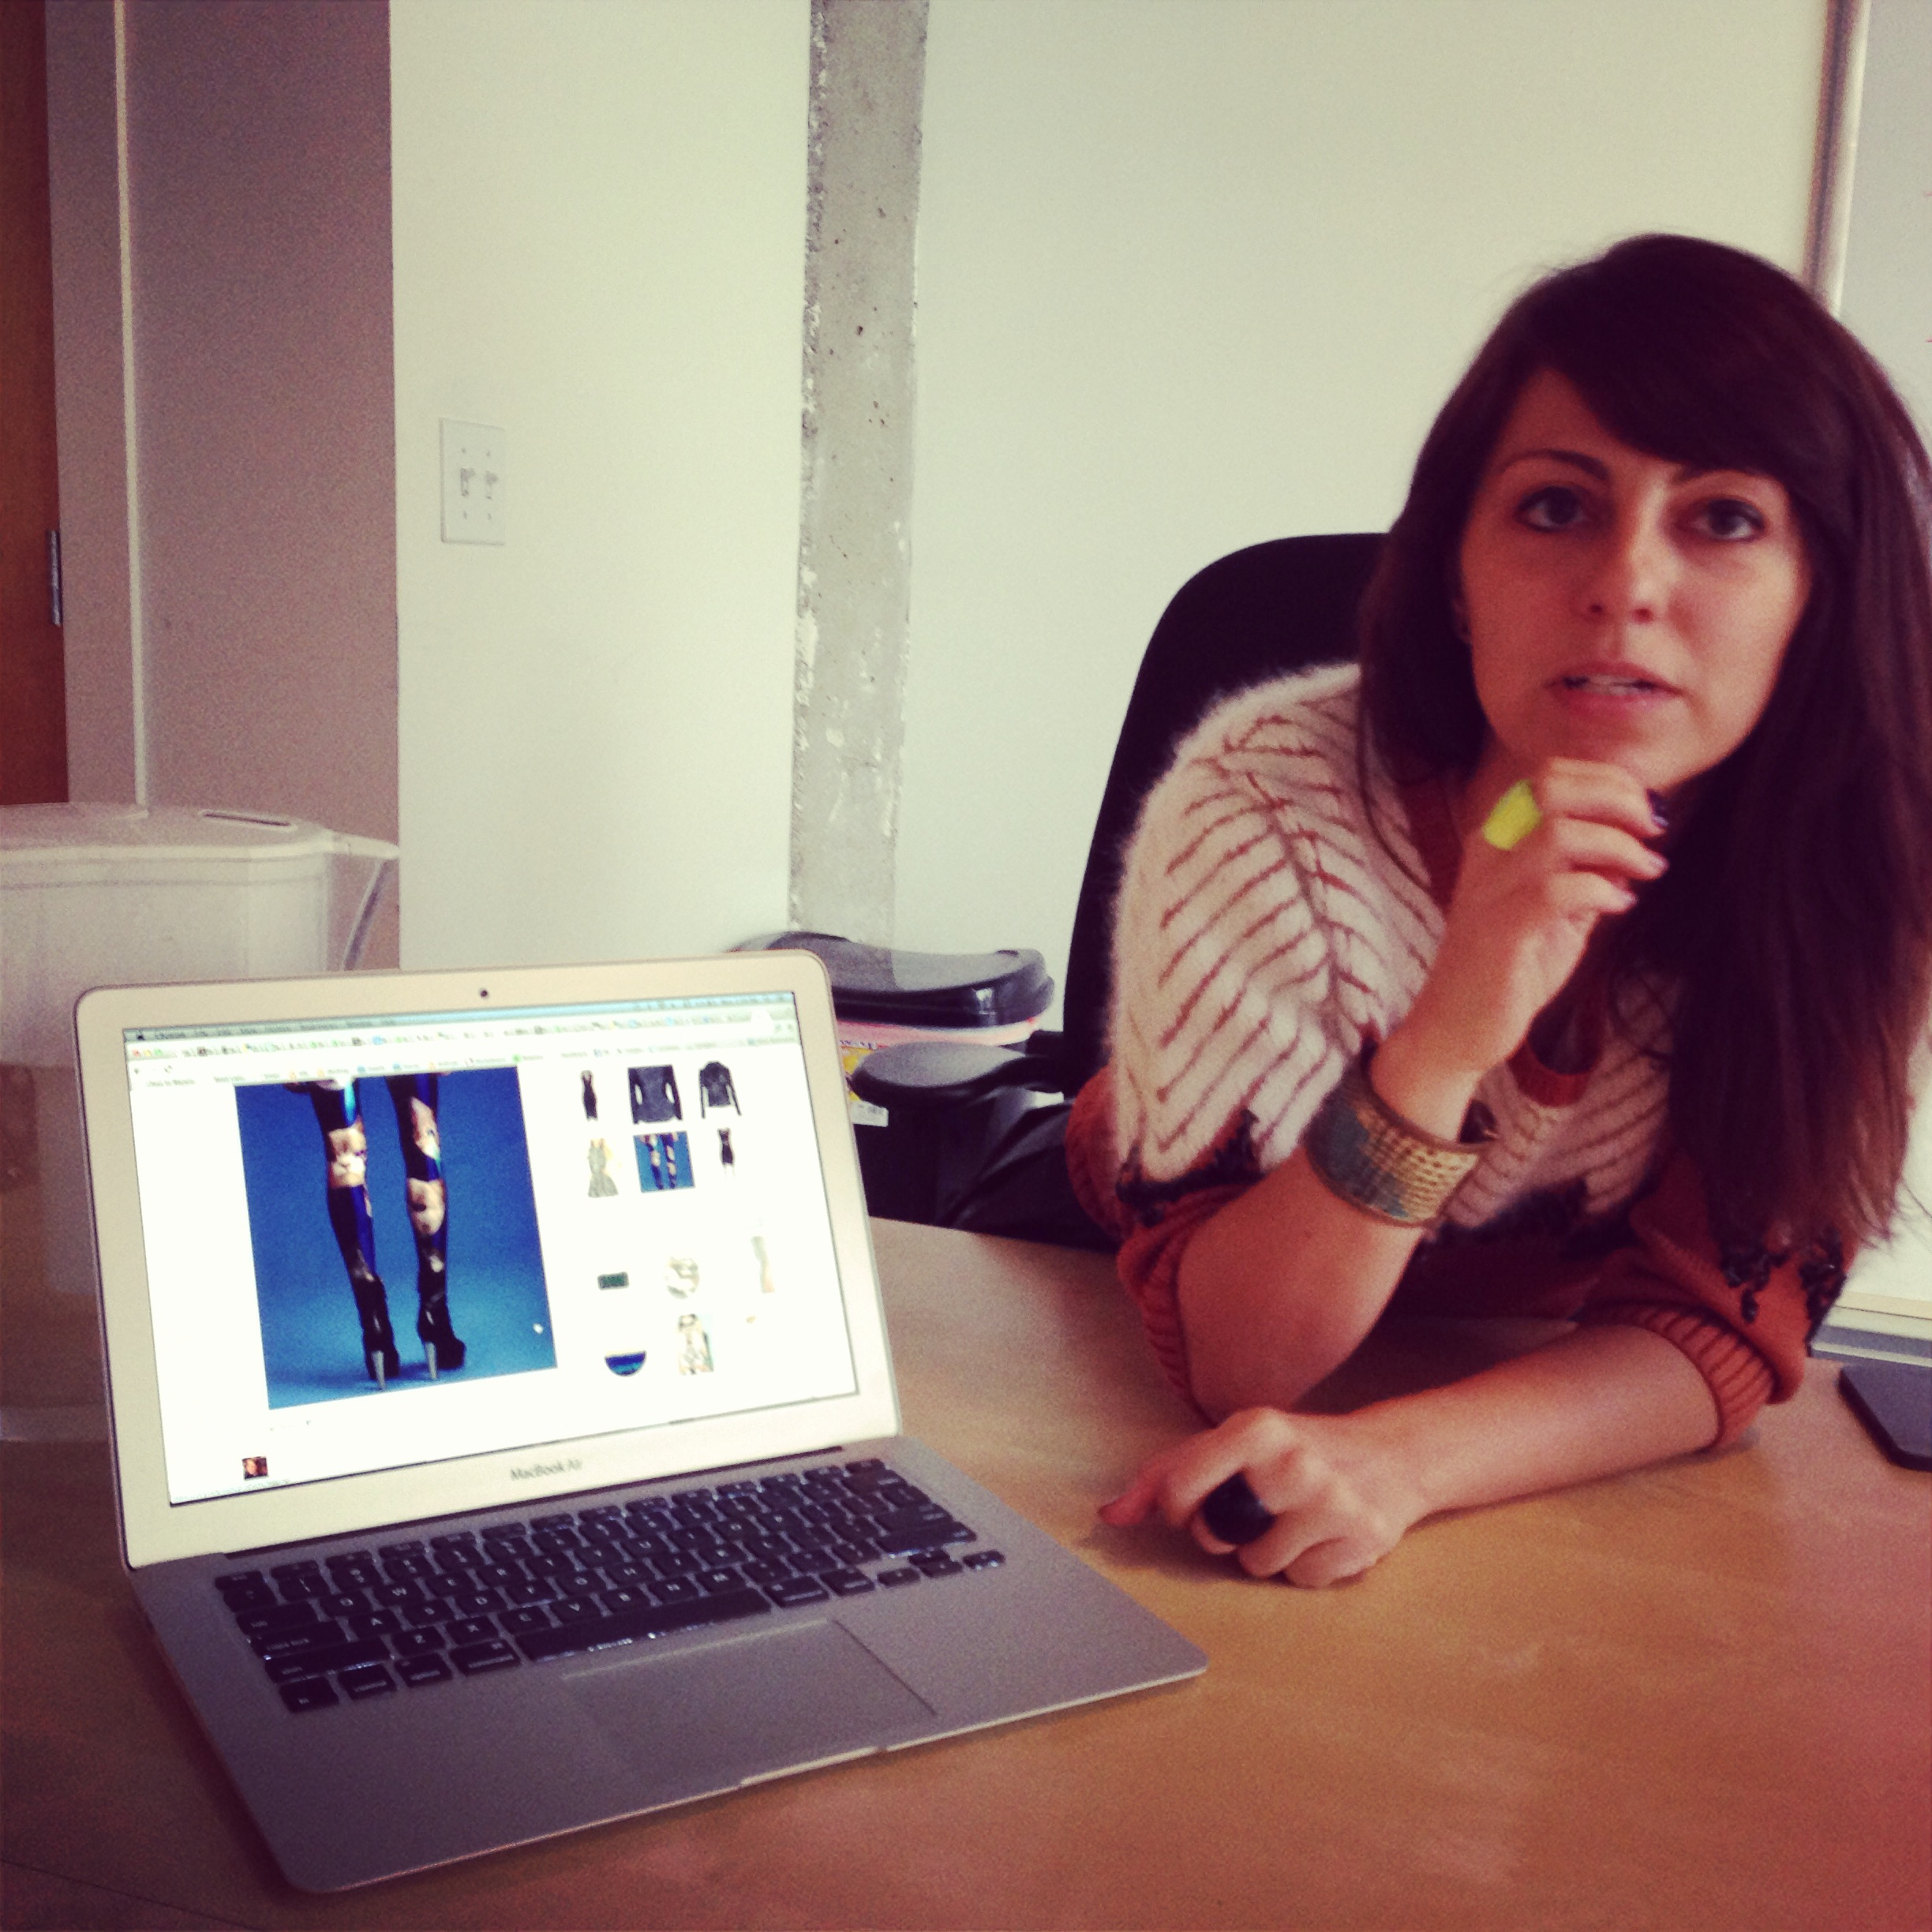 Wanelo CEO Deena Varshavskaya in the company's SOMA offices, showing off her recent Wanelo find -- cat-themed leggings.